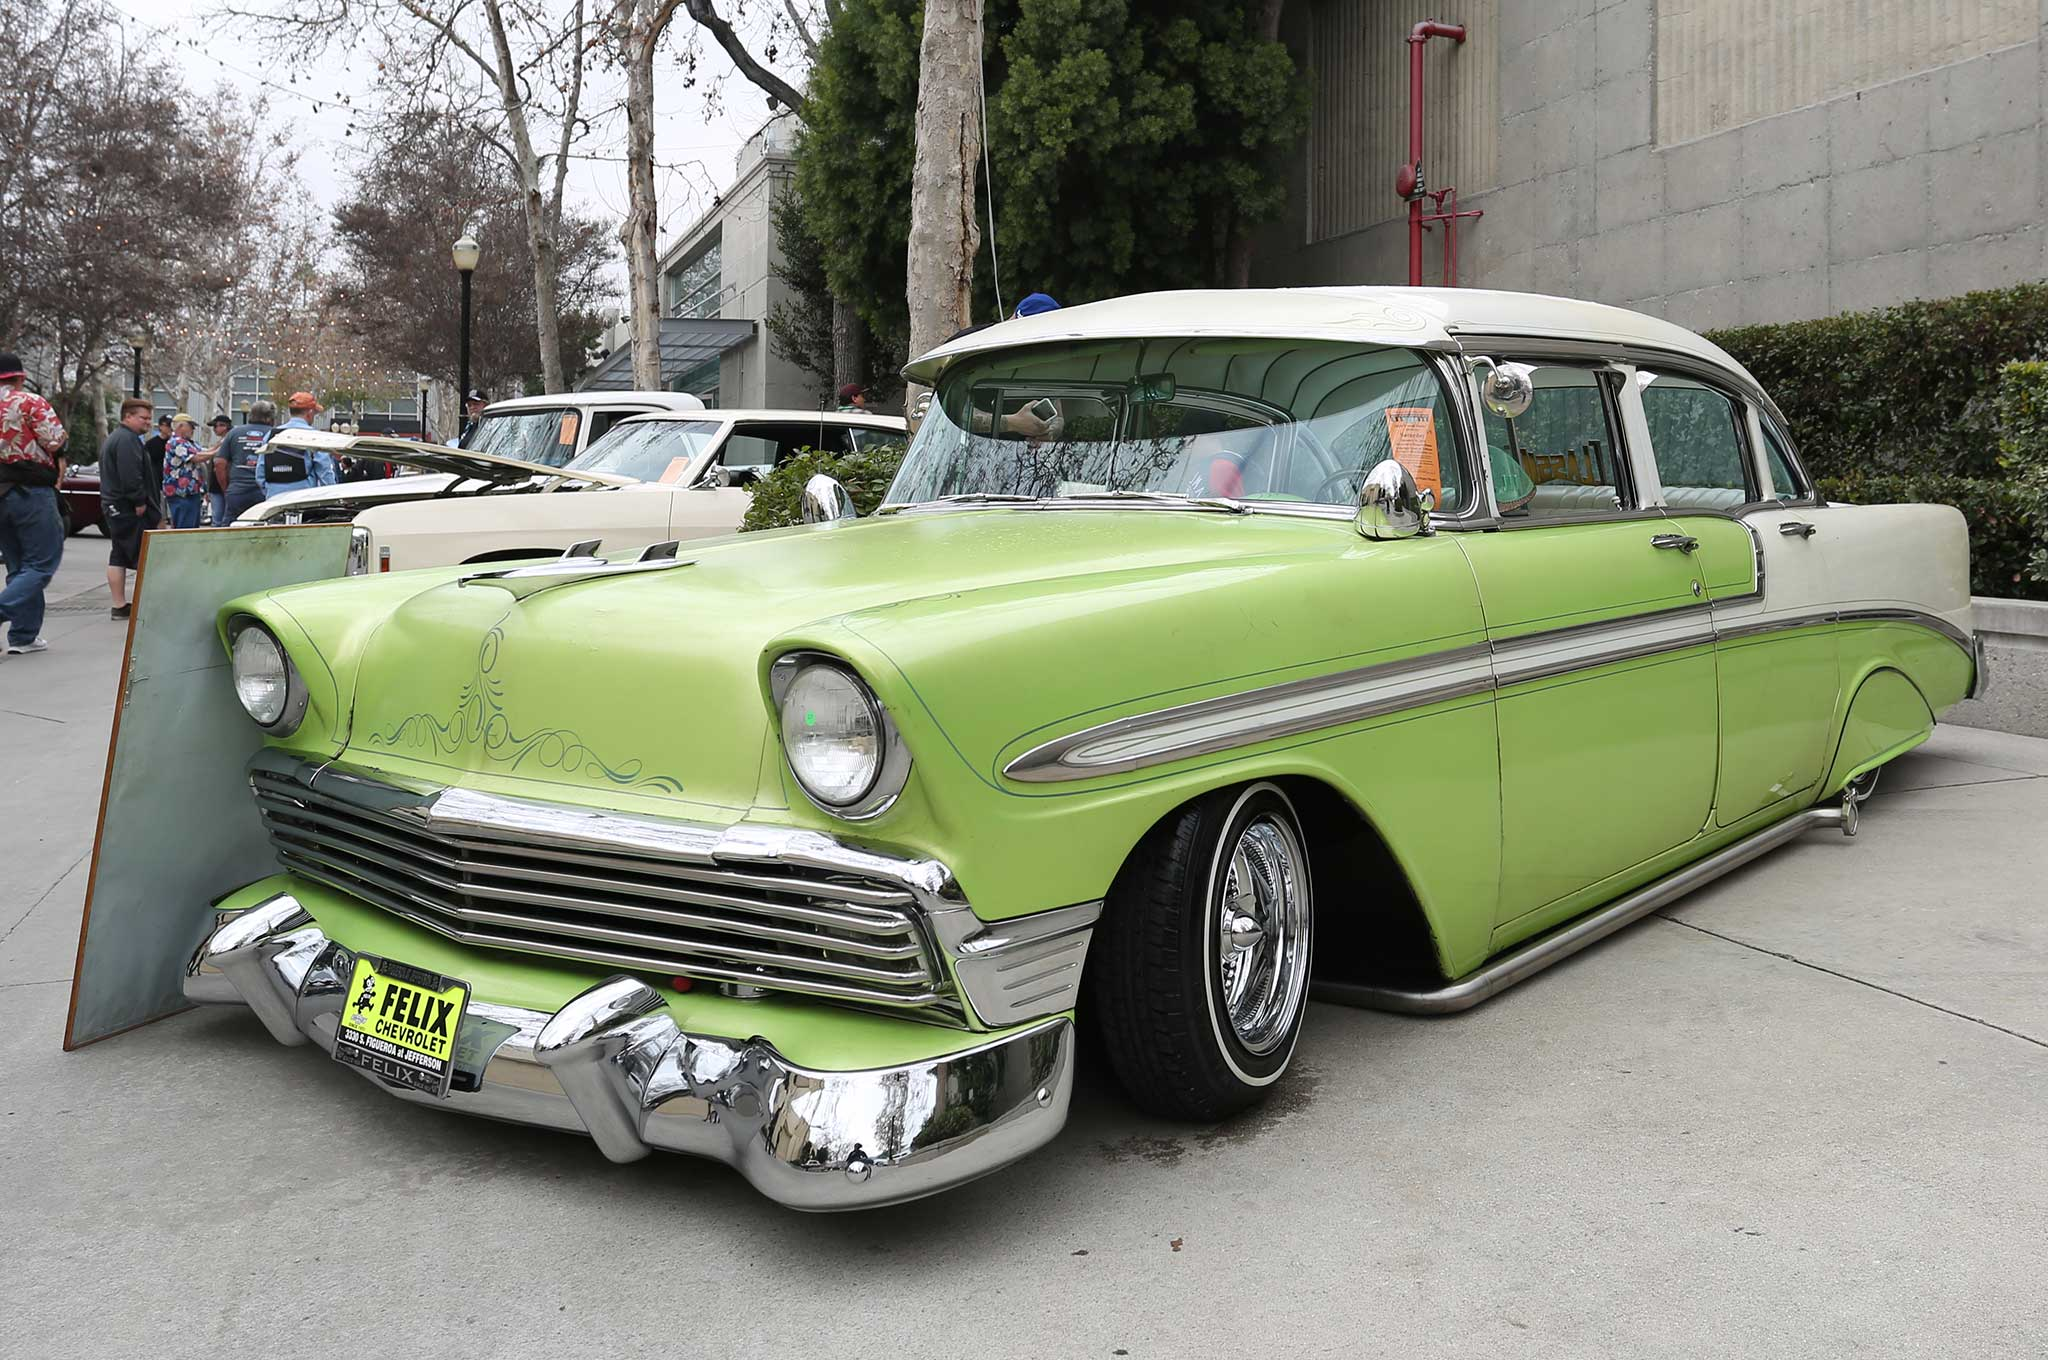 Grand National Roadster Show 2012 Pomona California Pictures to pin on ...